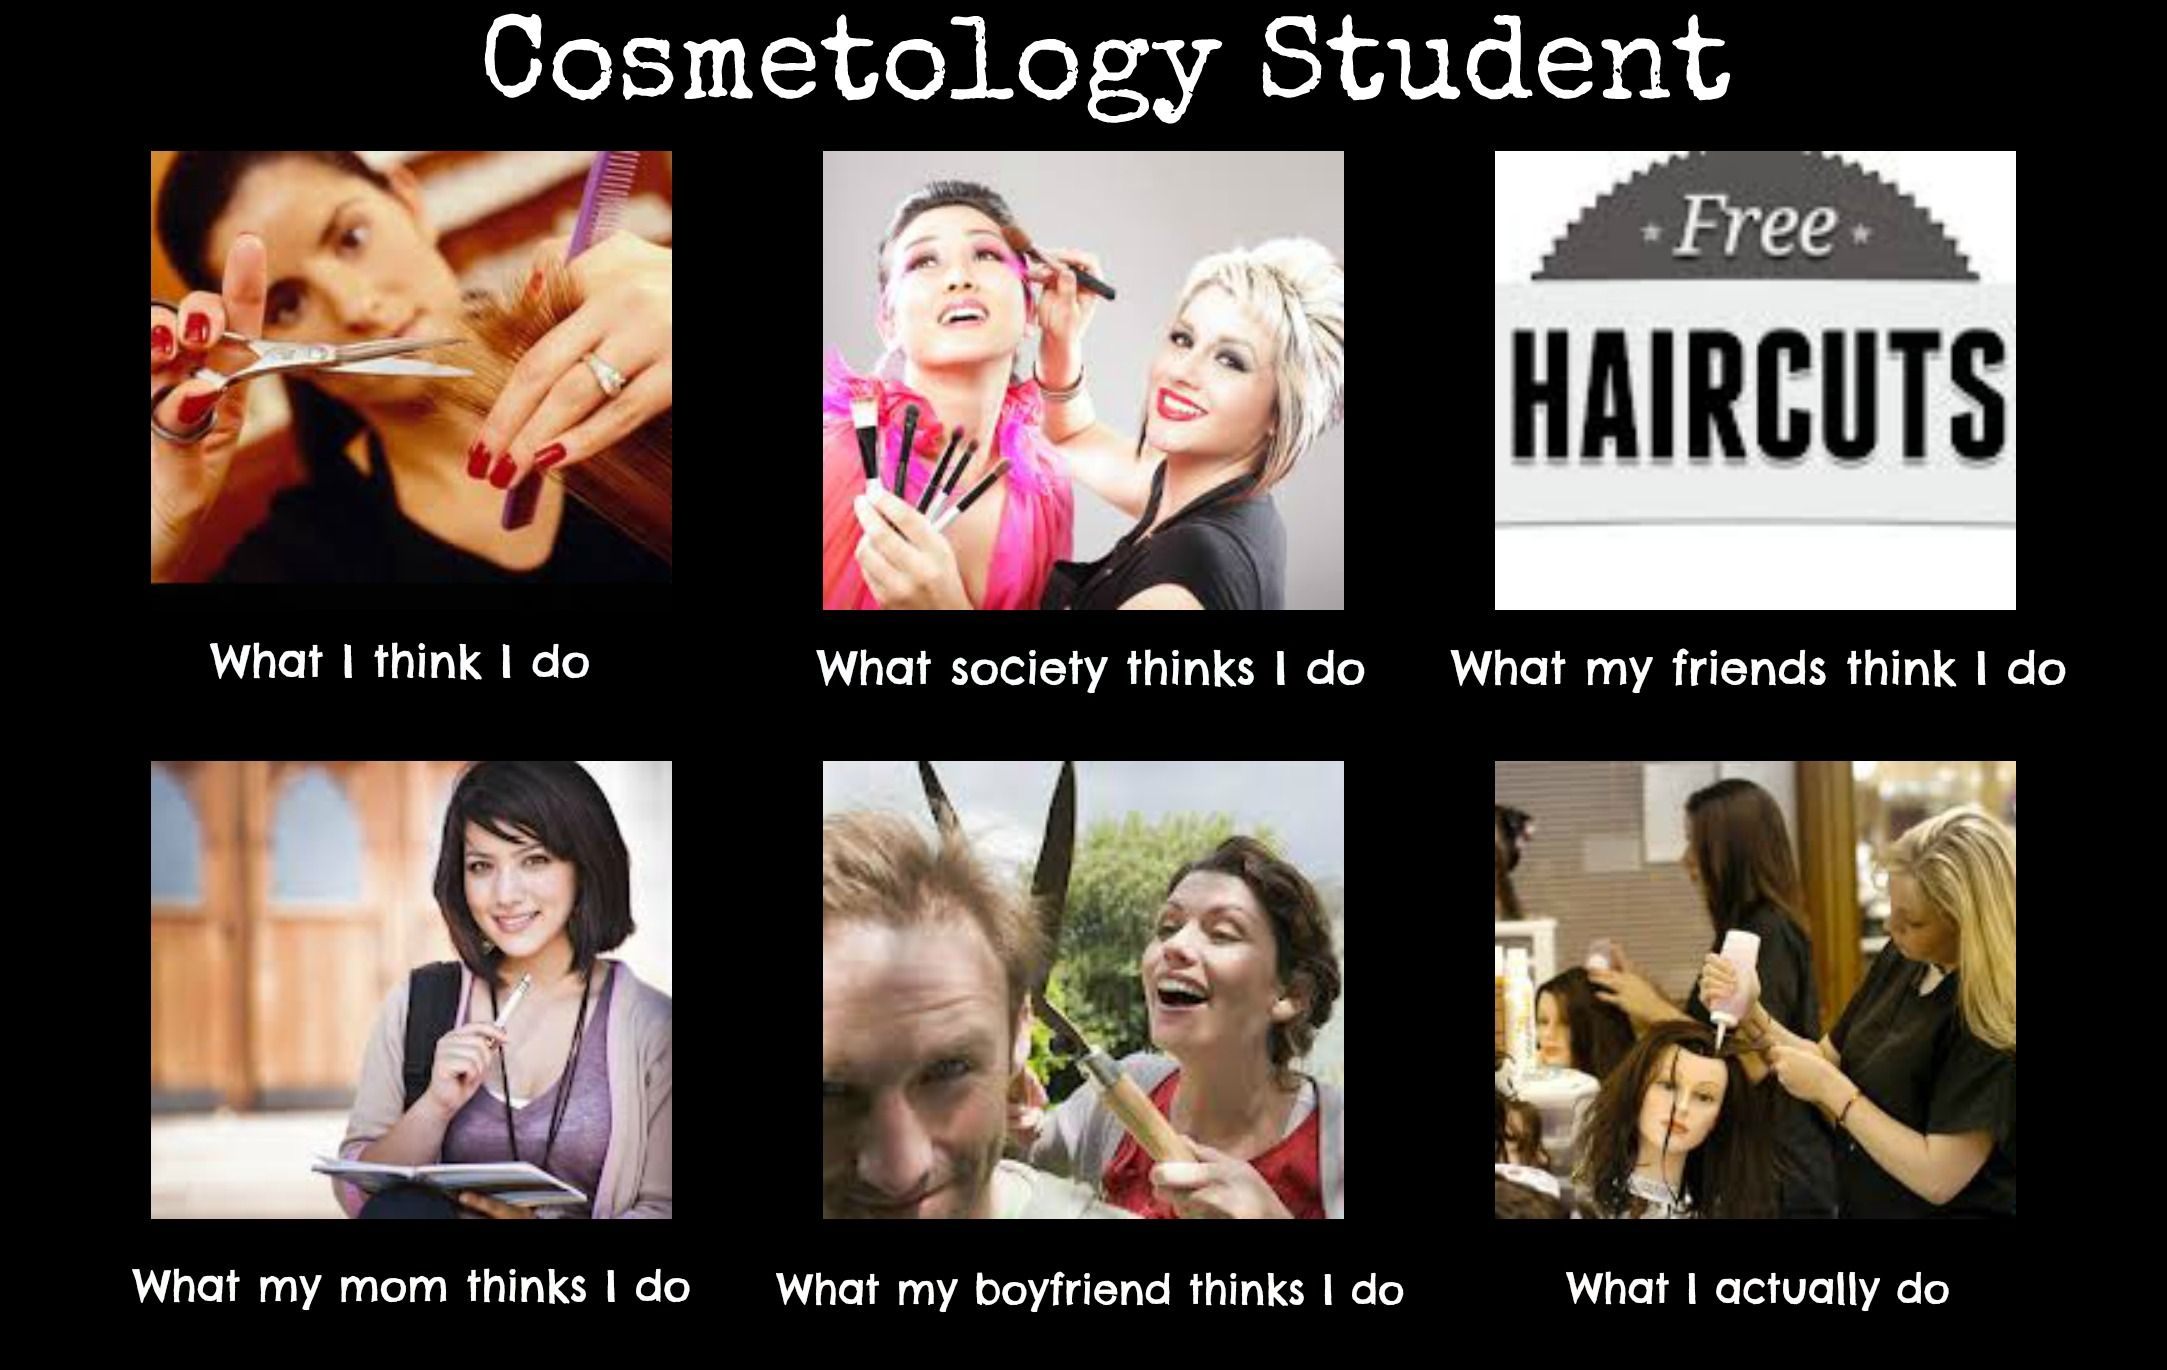 Cosmetology Student Haha This Is Even Better Than The Other One I